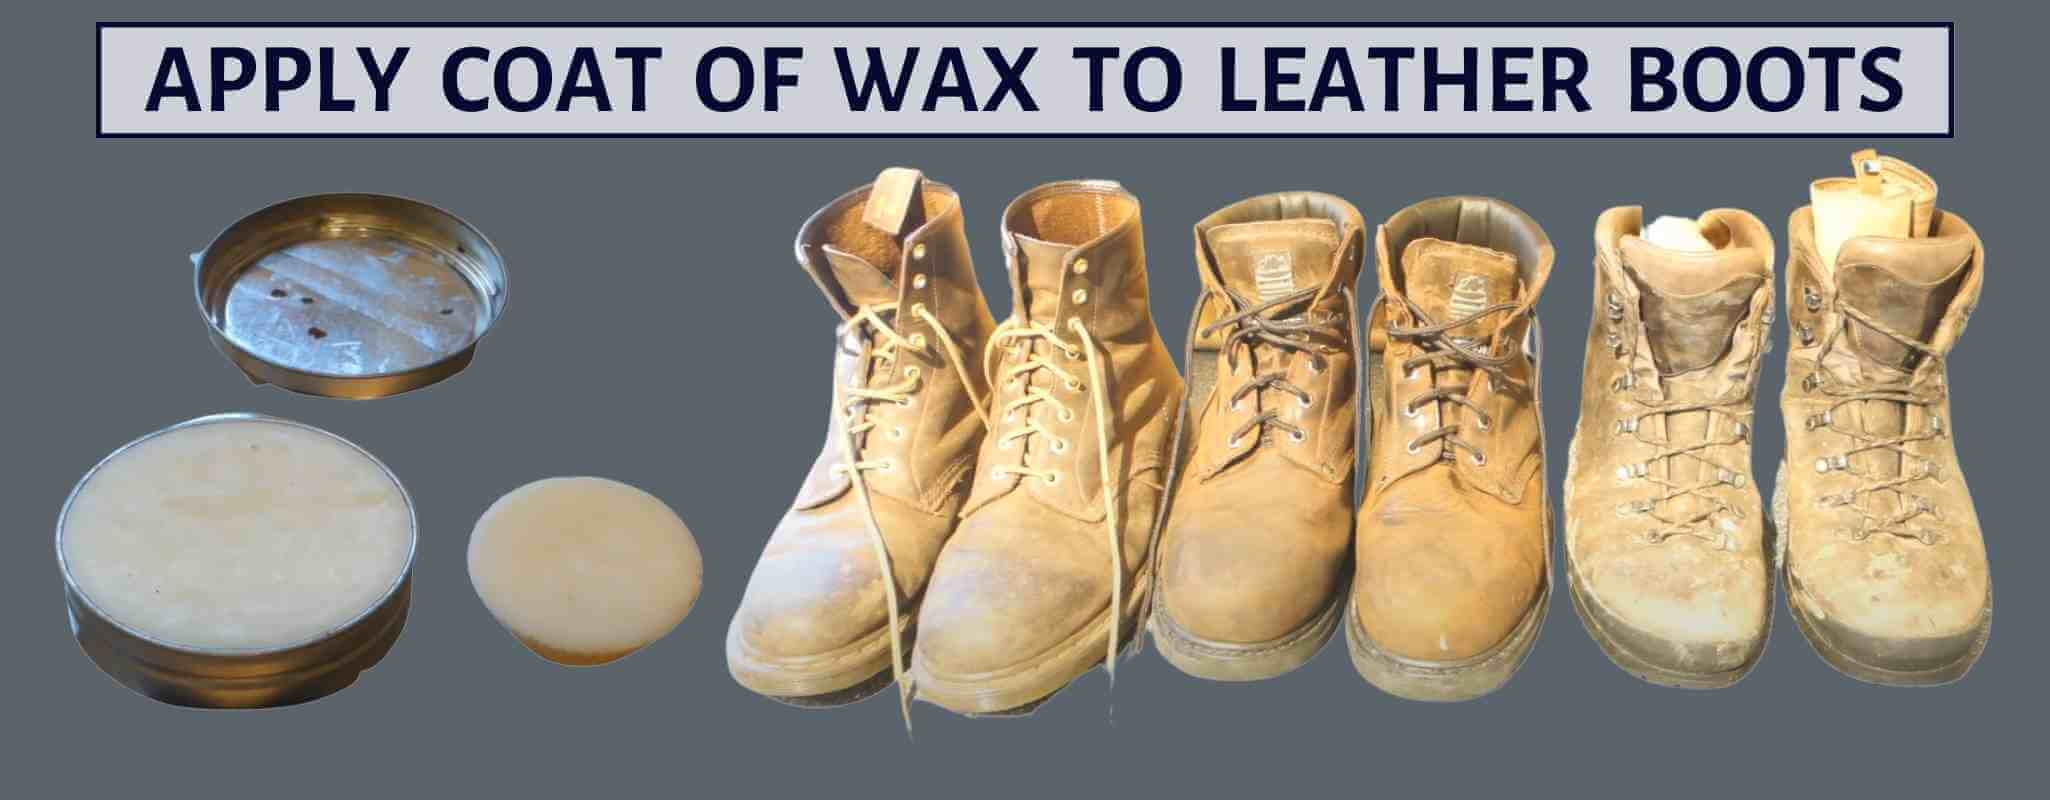 apply coat of wax to leather boots for waterproofing